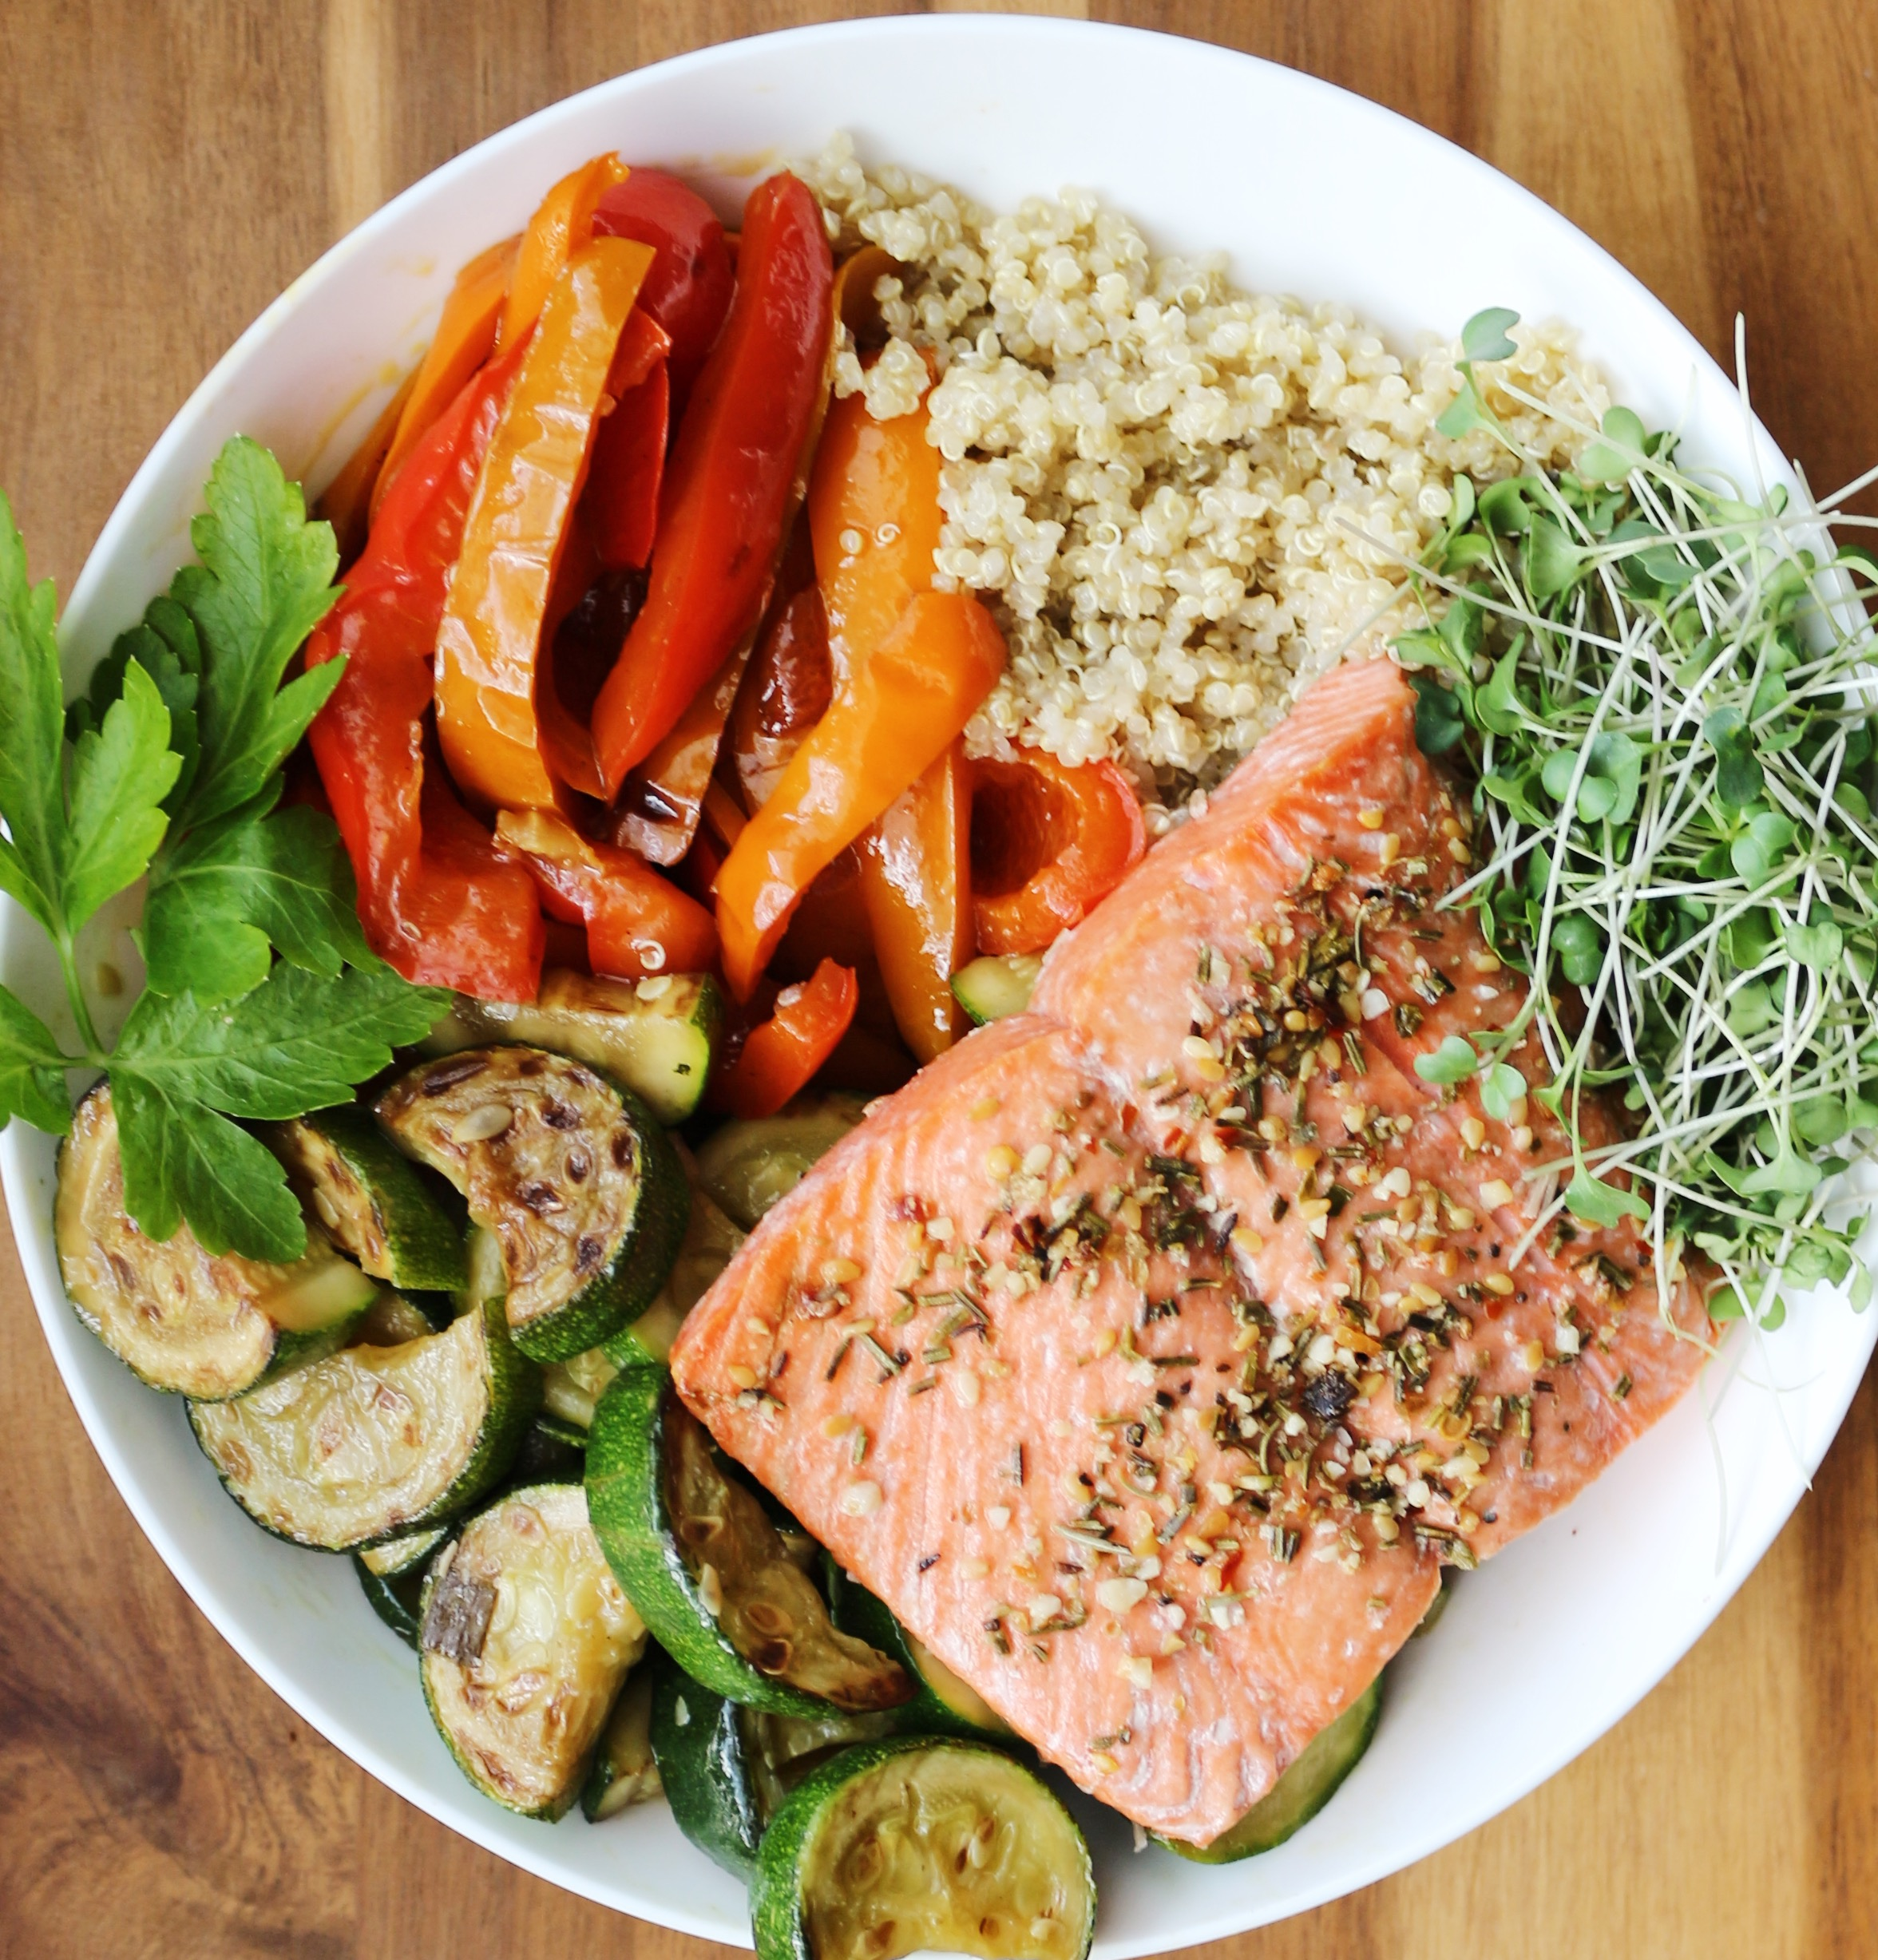 4 oz. of baked salmon with roasted zucchini and bell peppers, quinoa, andmicro greens